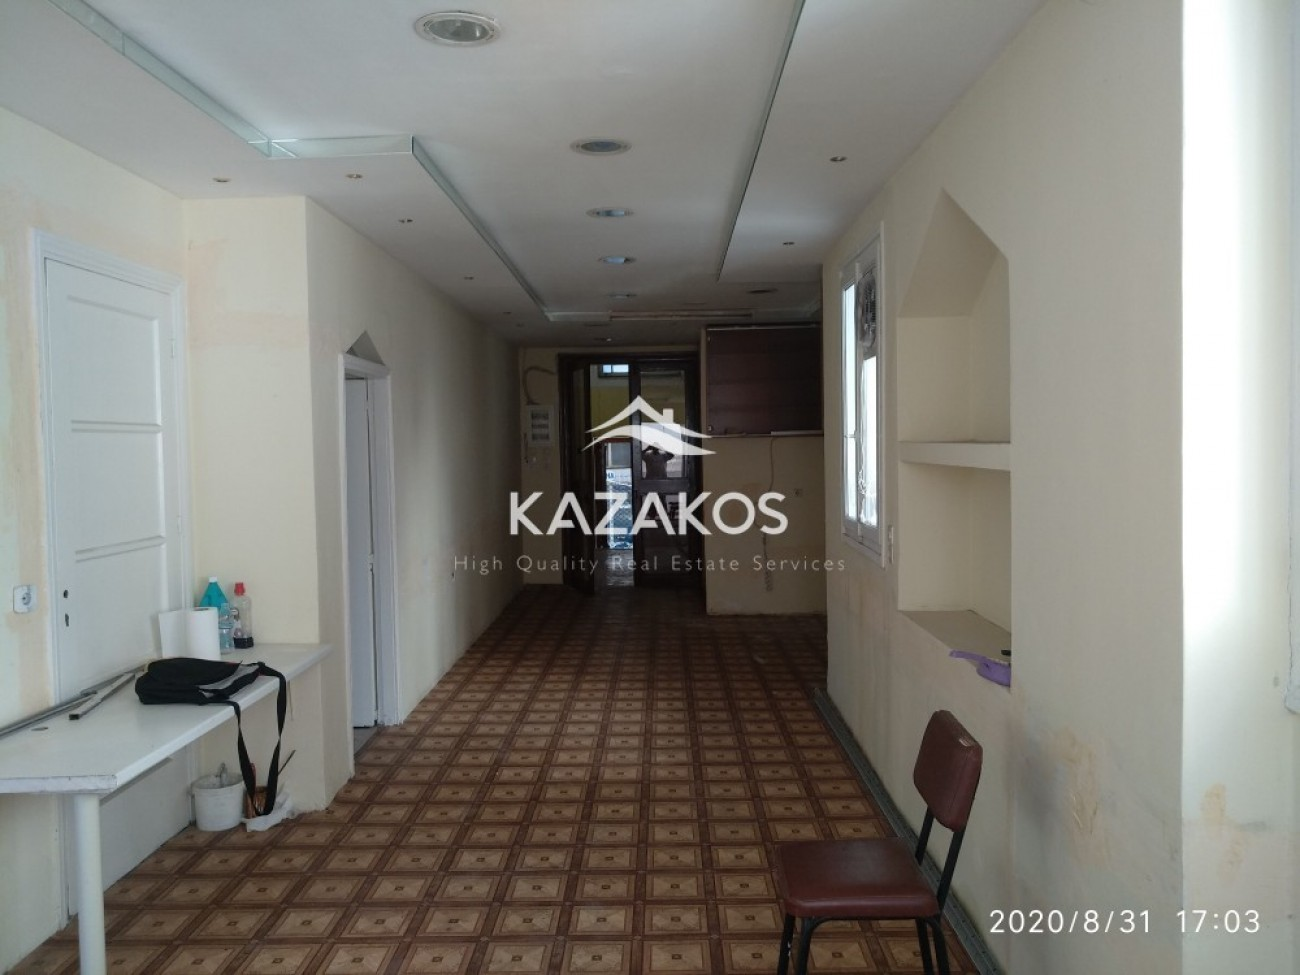 House for Sale in Saint Konstantinos- Vathis Square, Athens City Center, Greece